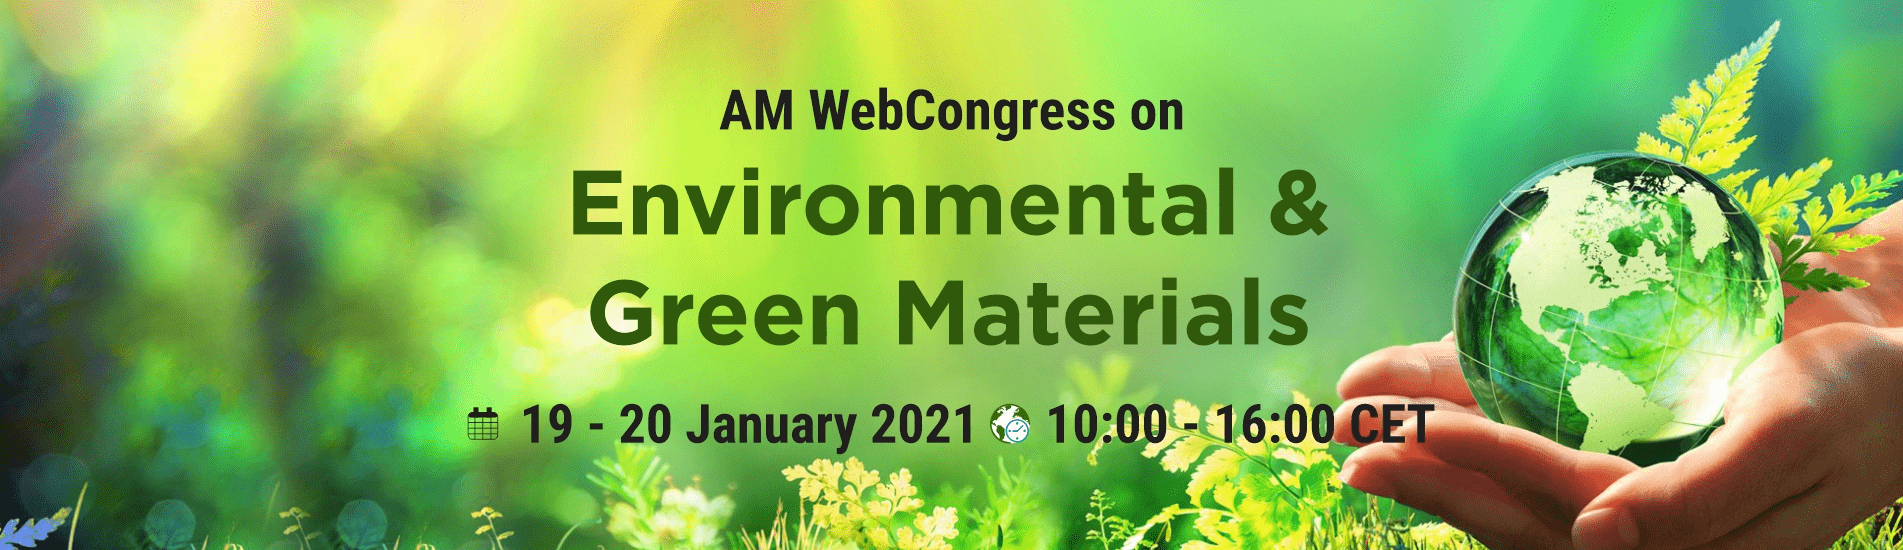 WebCongress on Environmental and Green Materials | AMWeb | IAAM